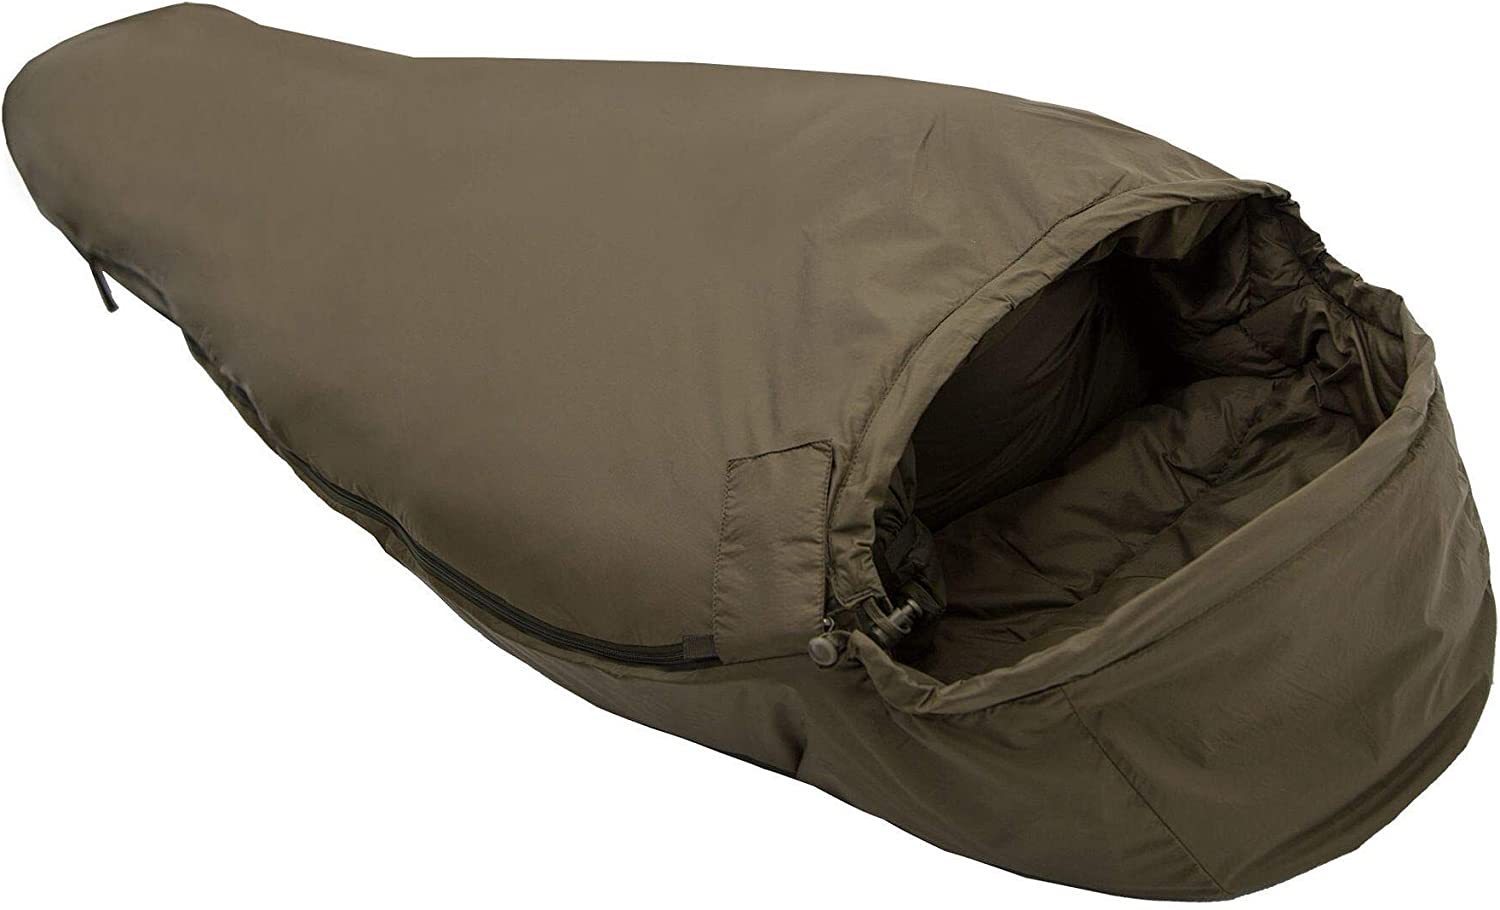 Sac de couchage Carinthia Eagle sable Large Camping Tentes Camping Outdoor